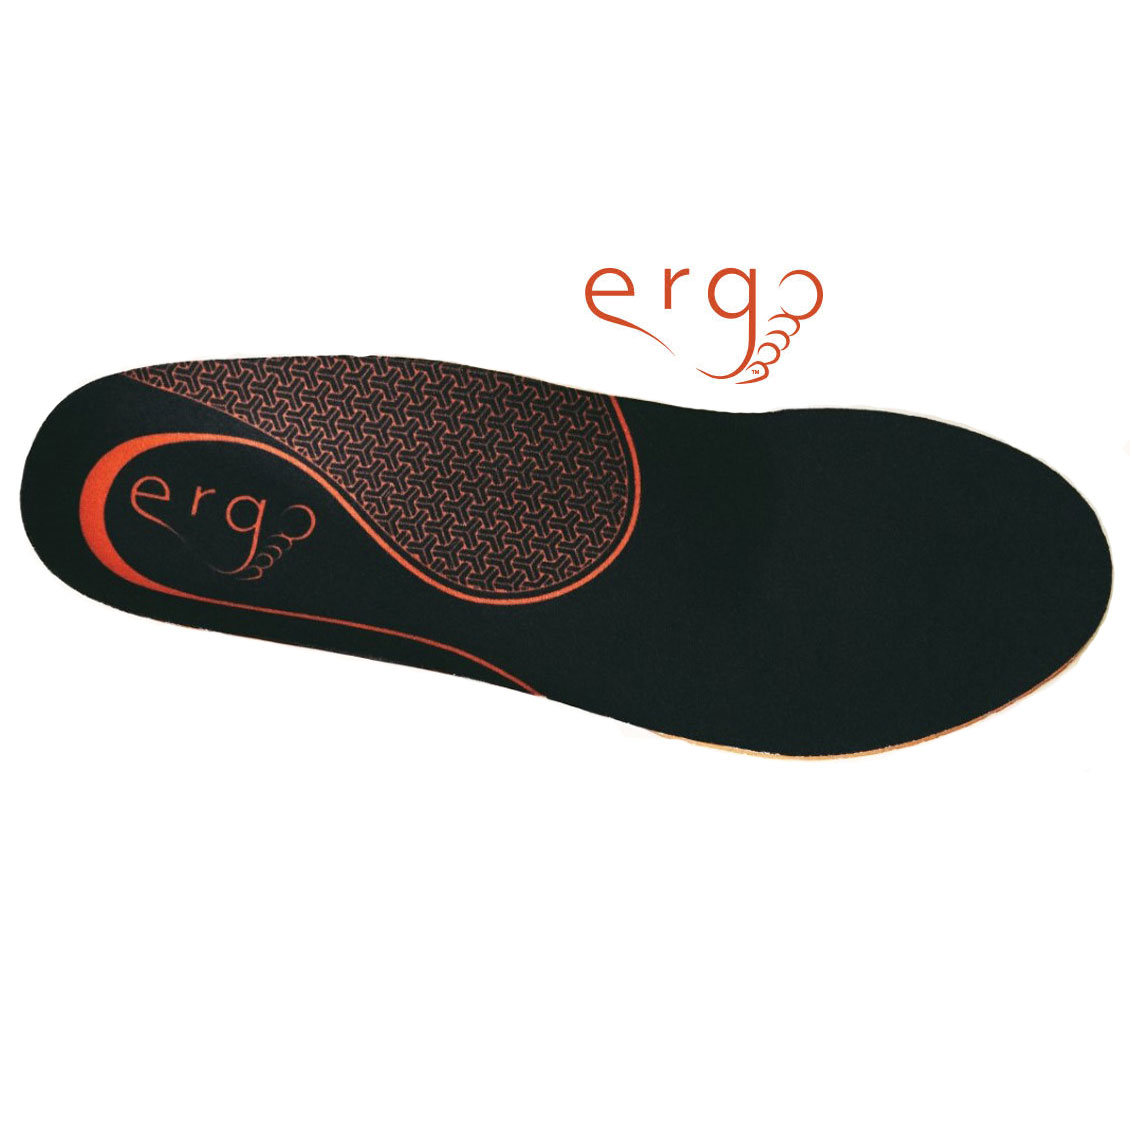 Ergo Comfort Ergonomically Anti-Fatigue Support Shoe Insoles-ERGO